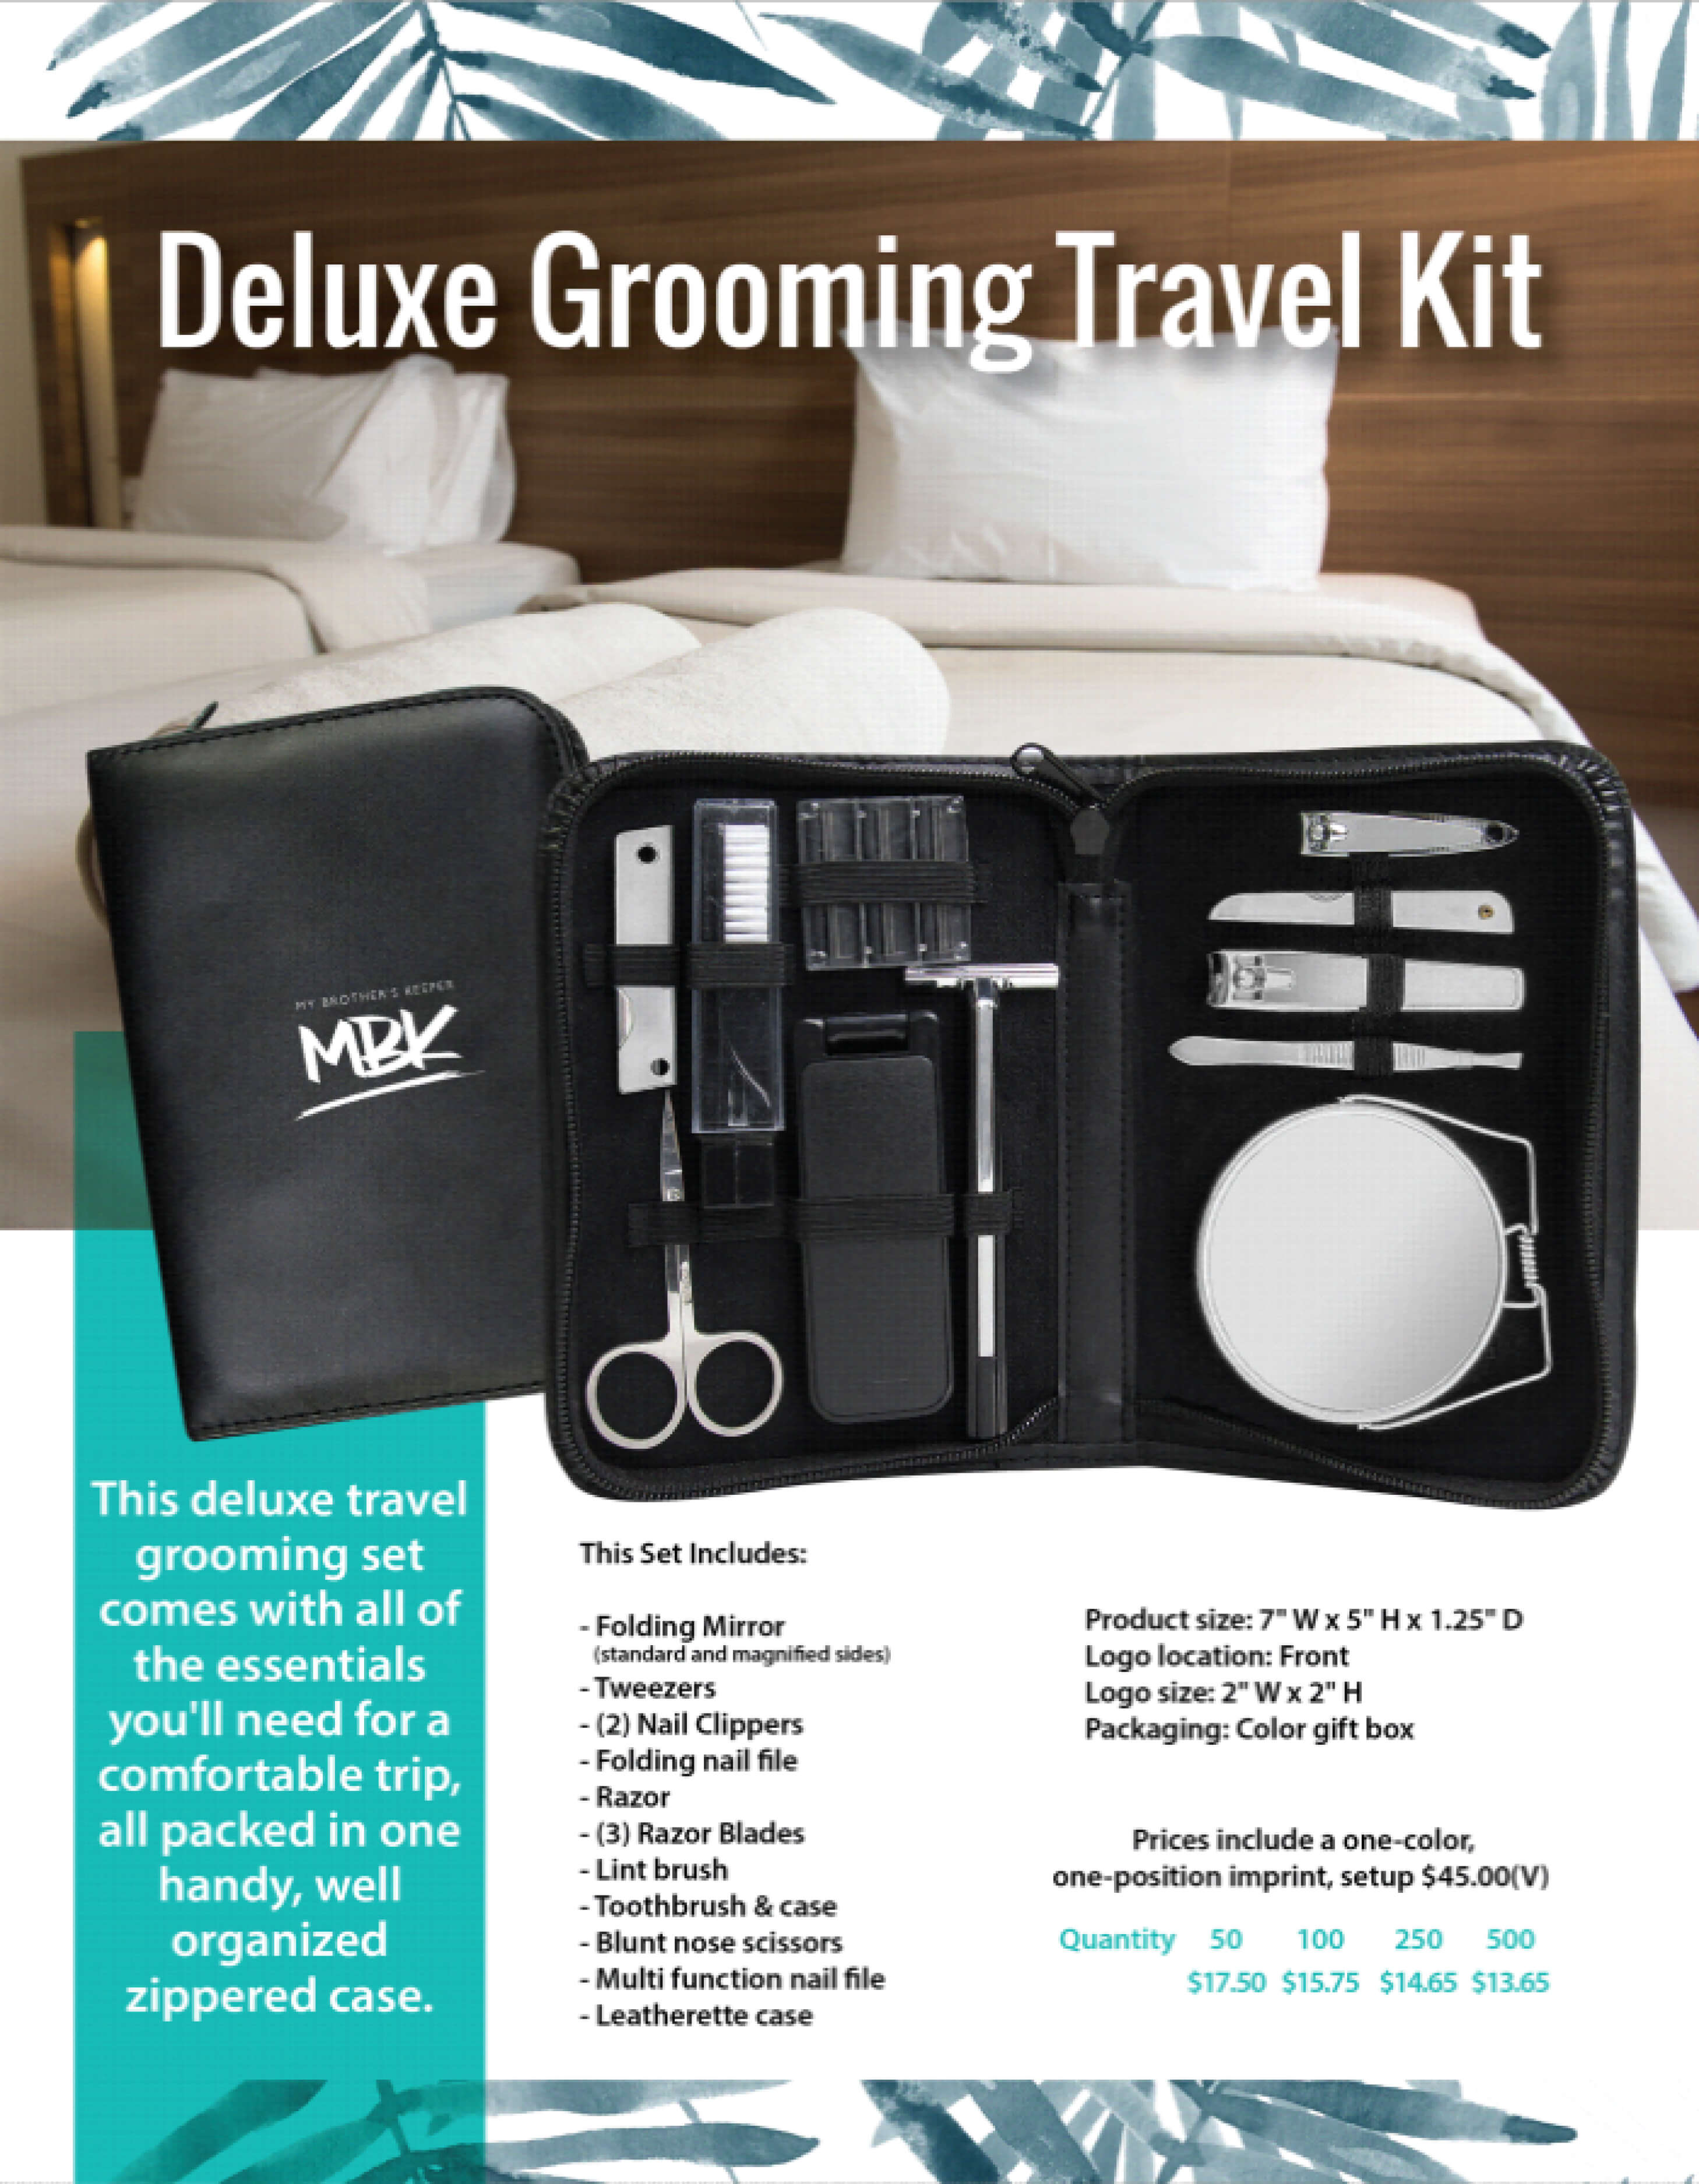 Our Travel Set Grooms Your Brand